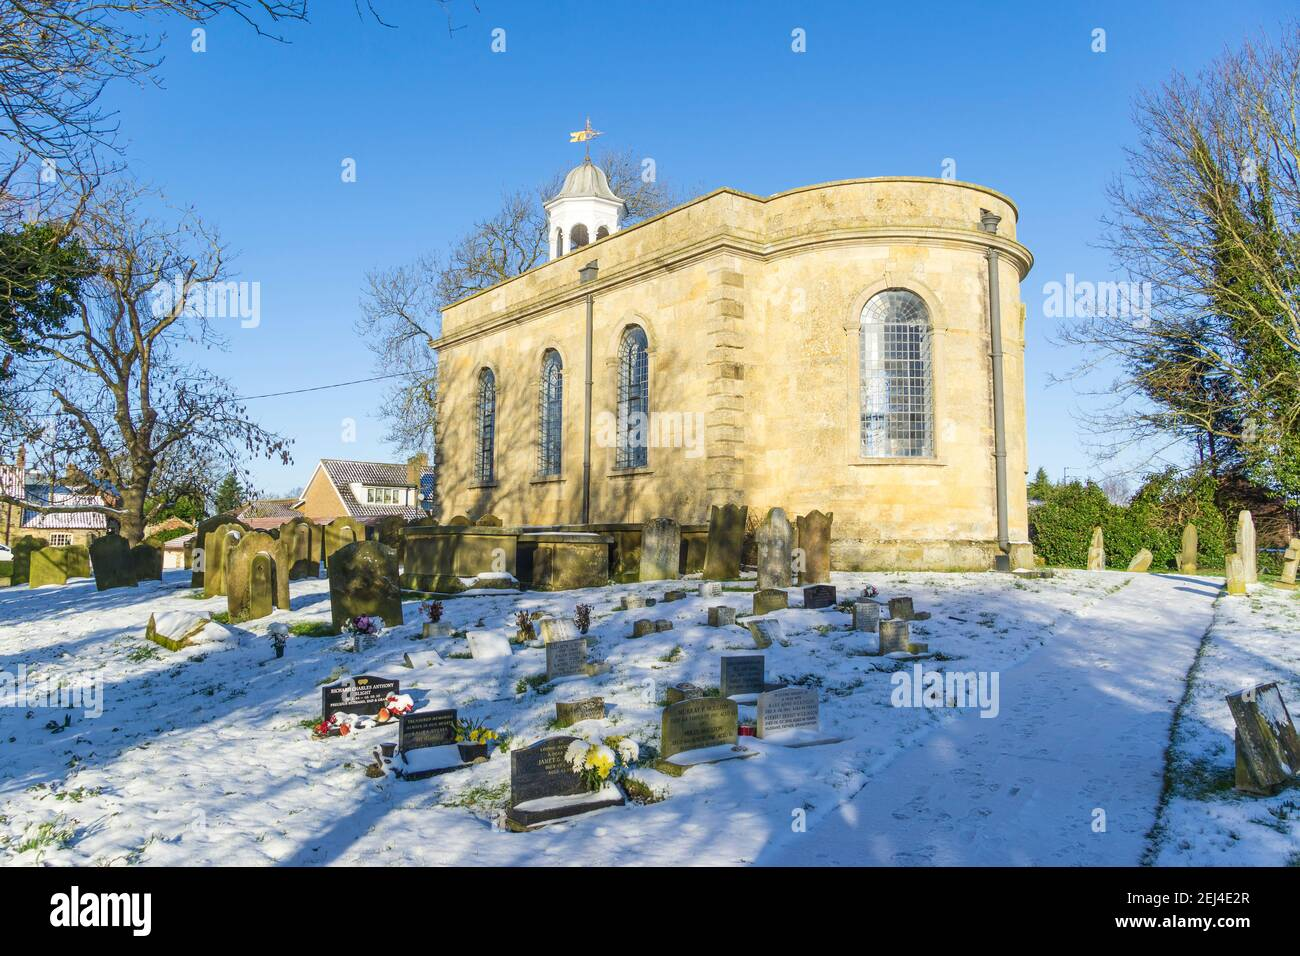 st-peter-and-st-pauls-church-cherry-wilingham-in-winter-2EJ4E2R.jpg